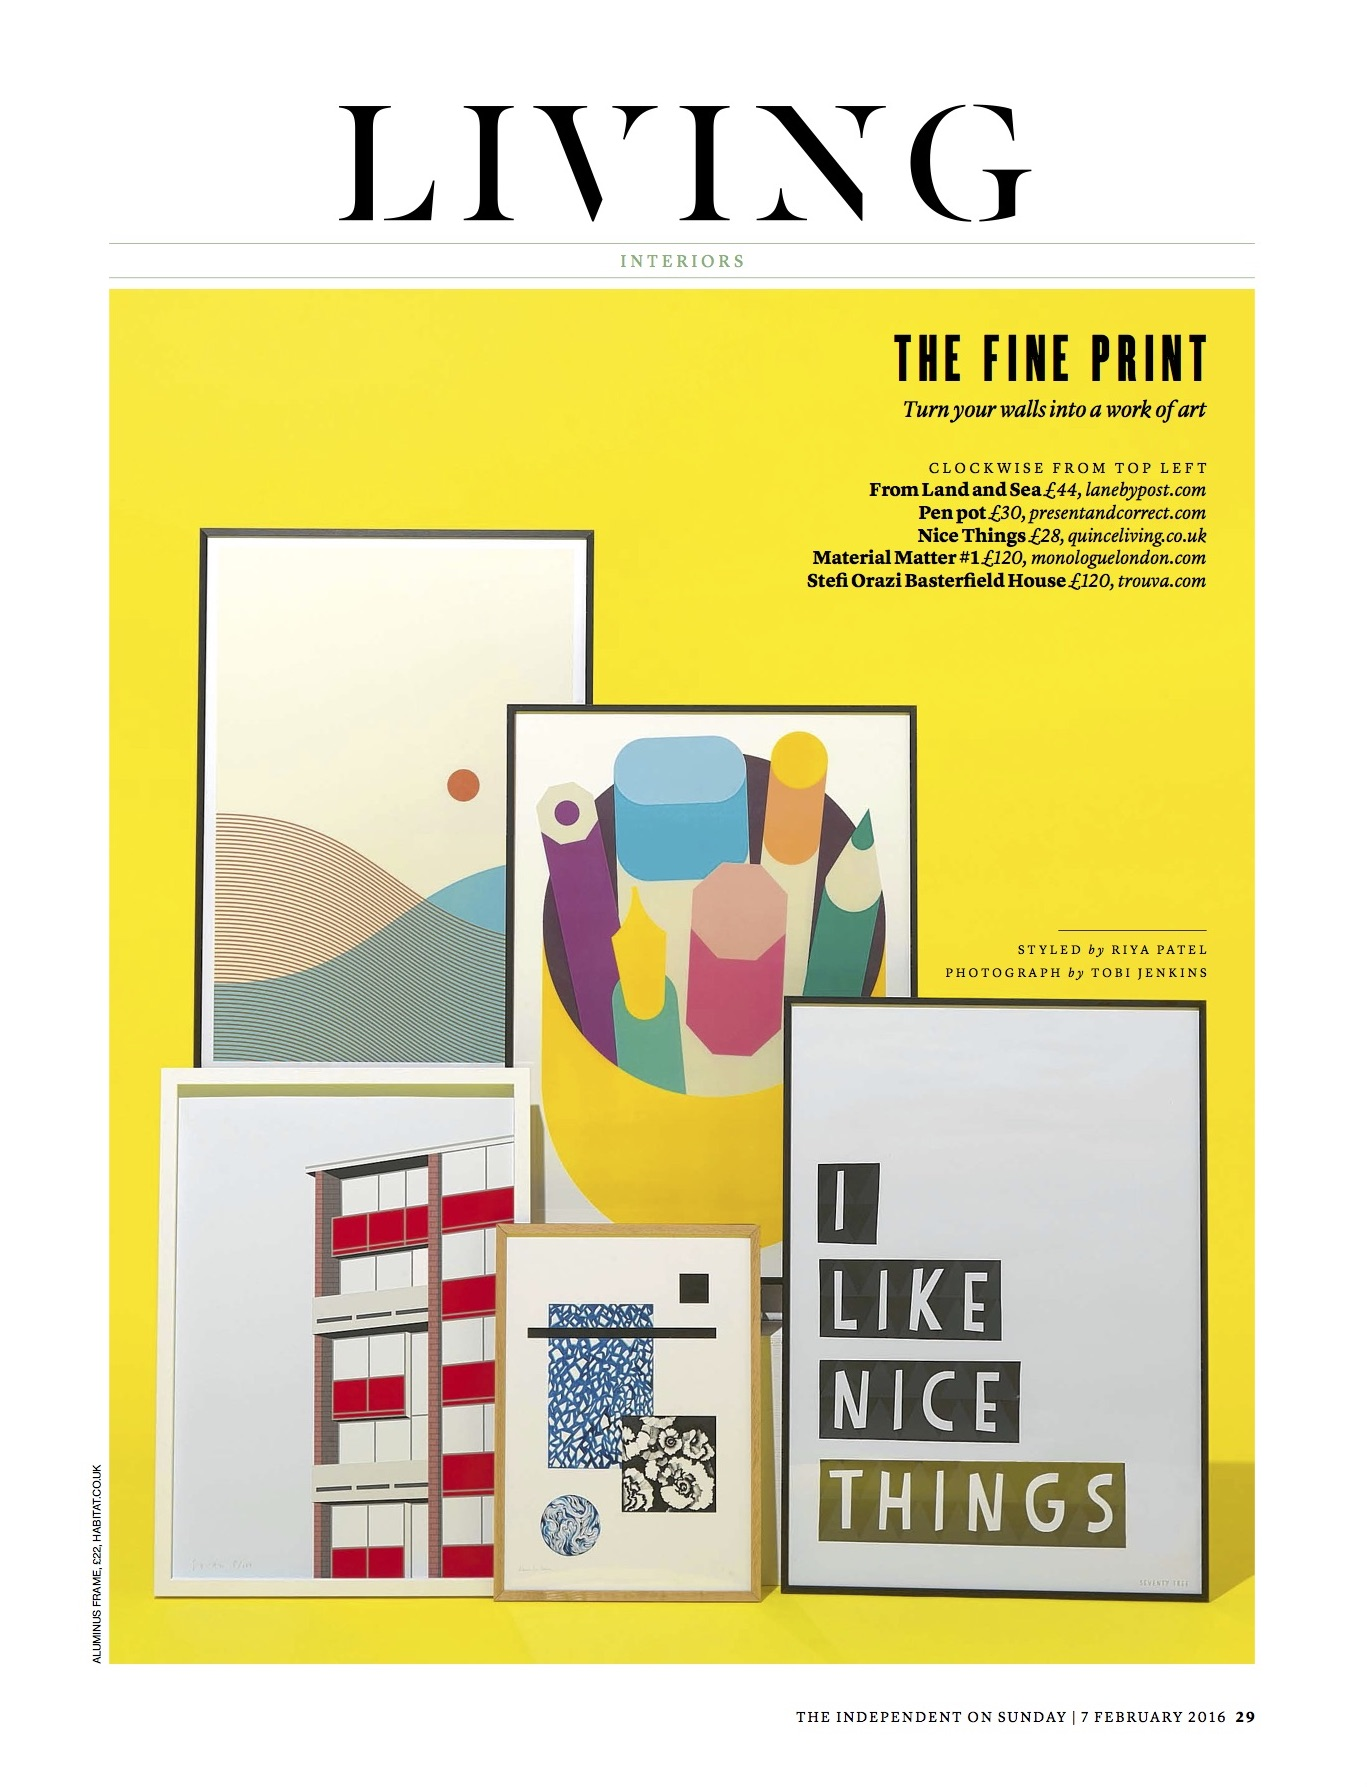 The Independent on Sunday, February 2016,  Lane From Land & Sea hand pulled screen print